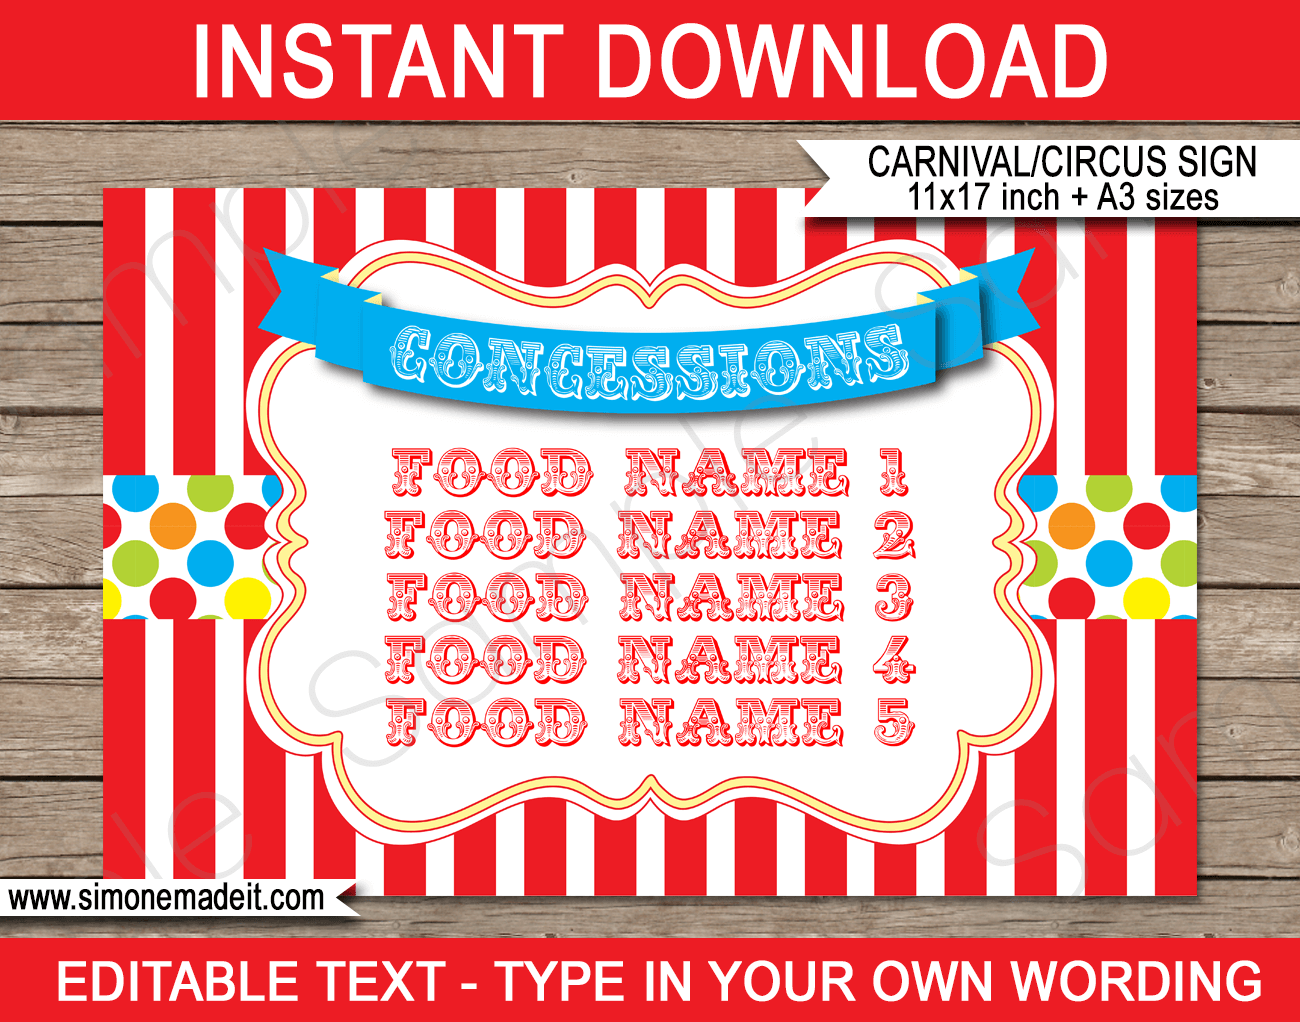 Printable Carnival Concessions Signs | Editable Text | Editable DIY Template | Circus Theme Party Decorations | $4.00 Instant Download via SIMONEmadeit.com